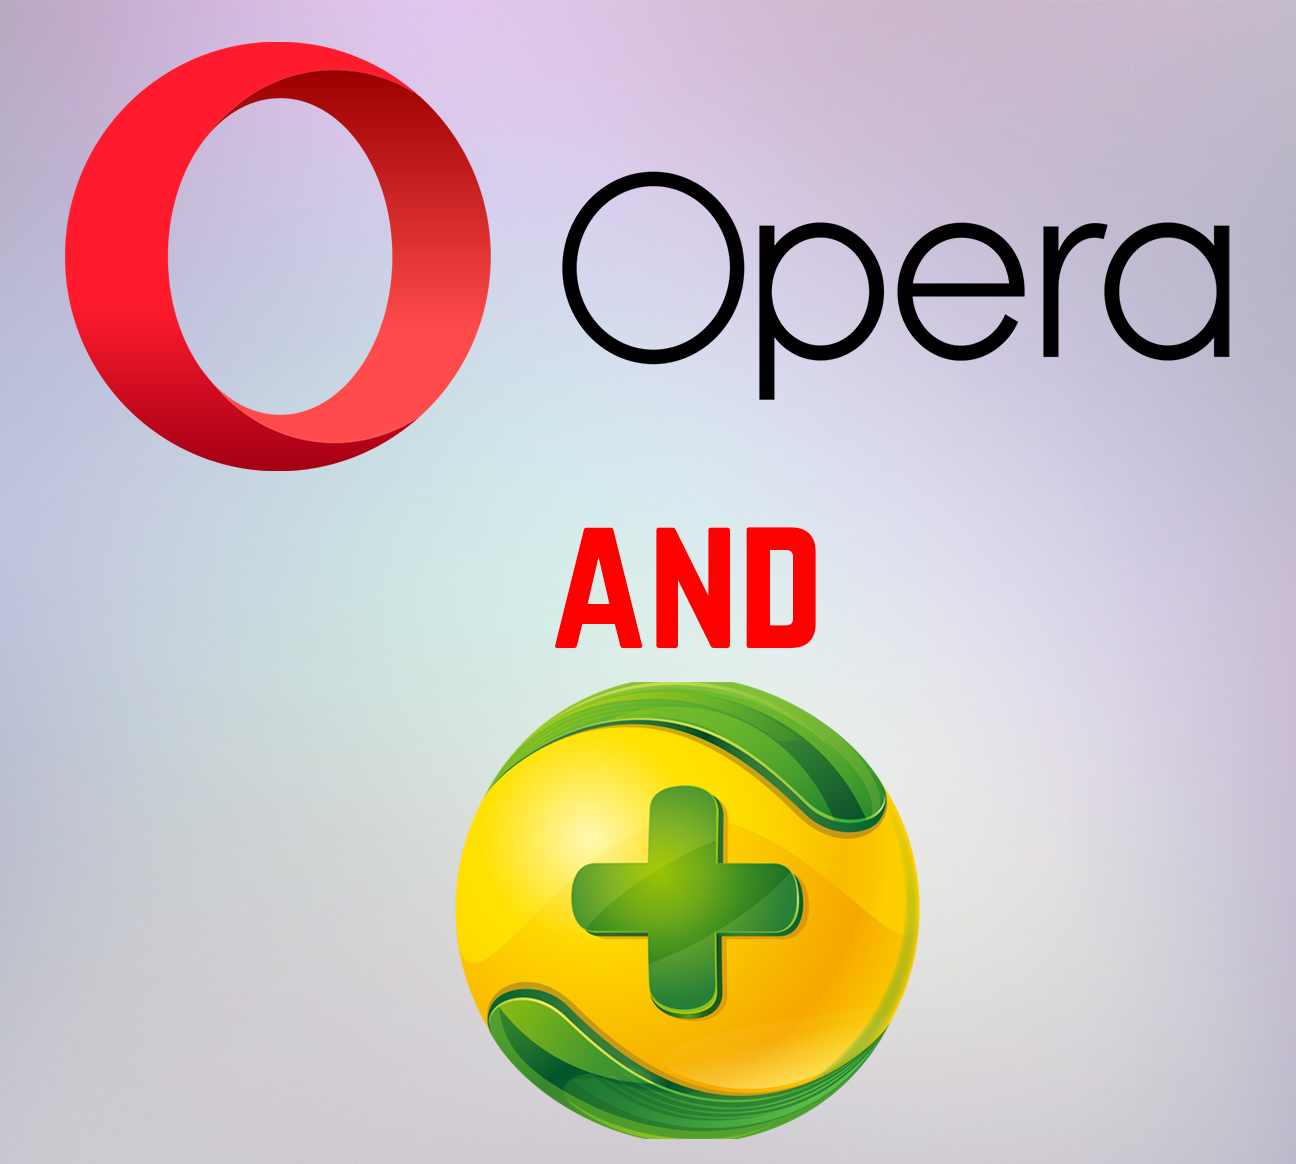 Opera Acquired by Qihoo 360 for $600 Million